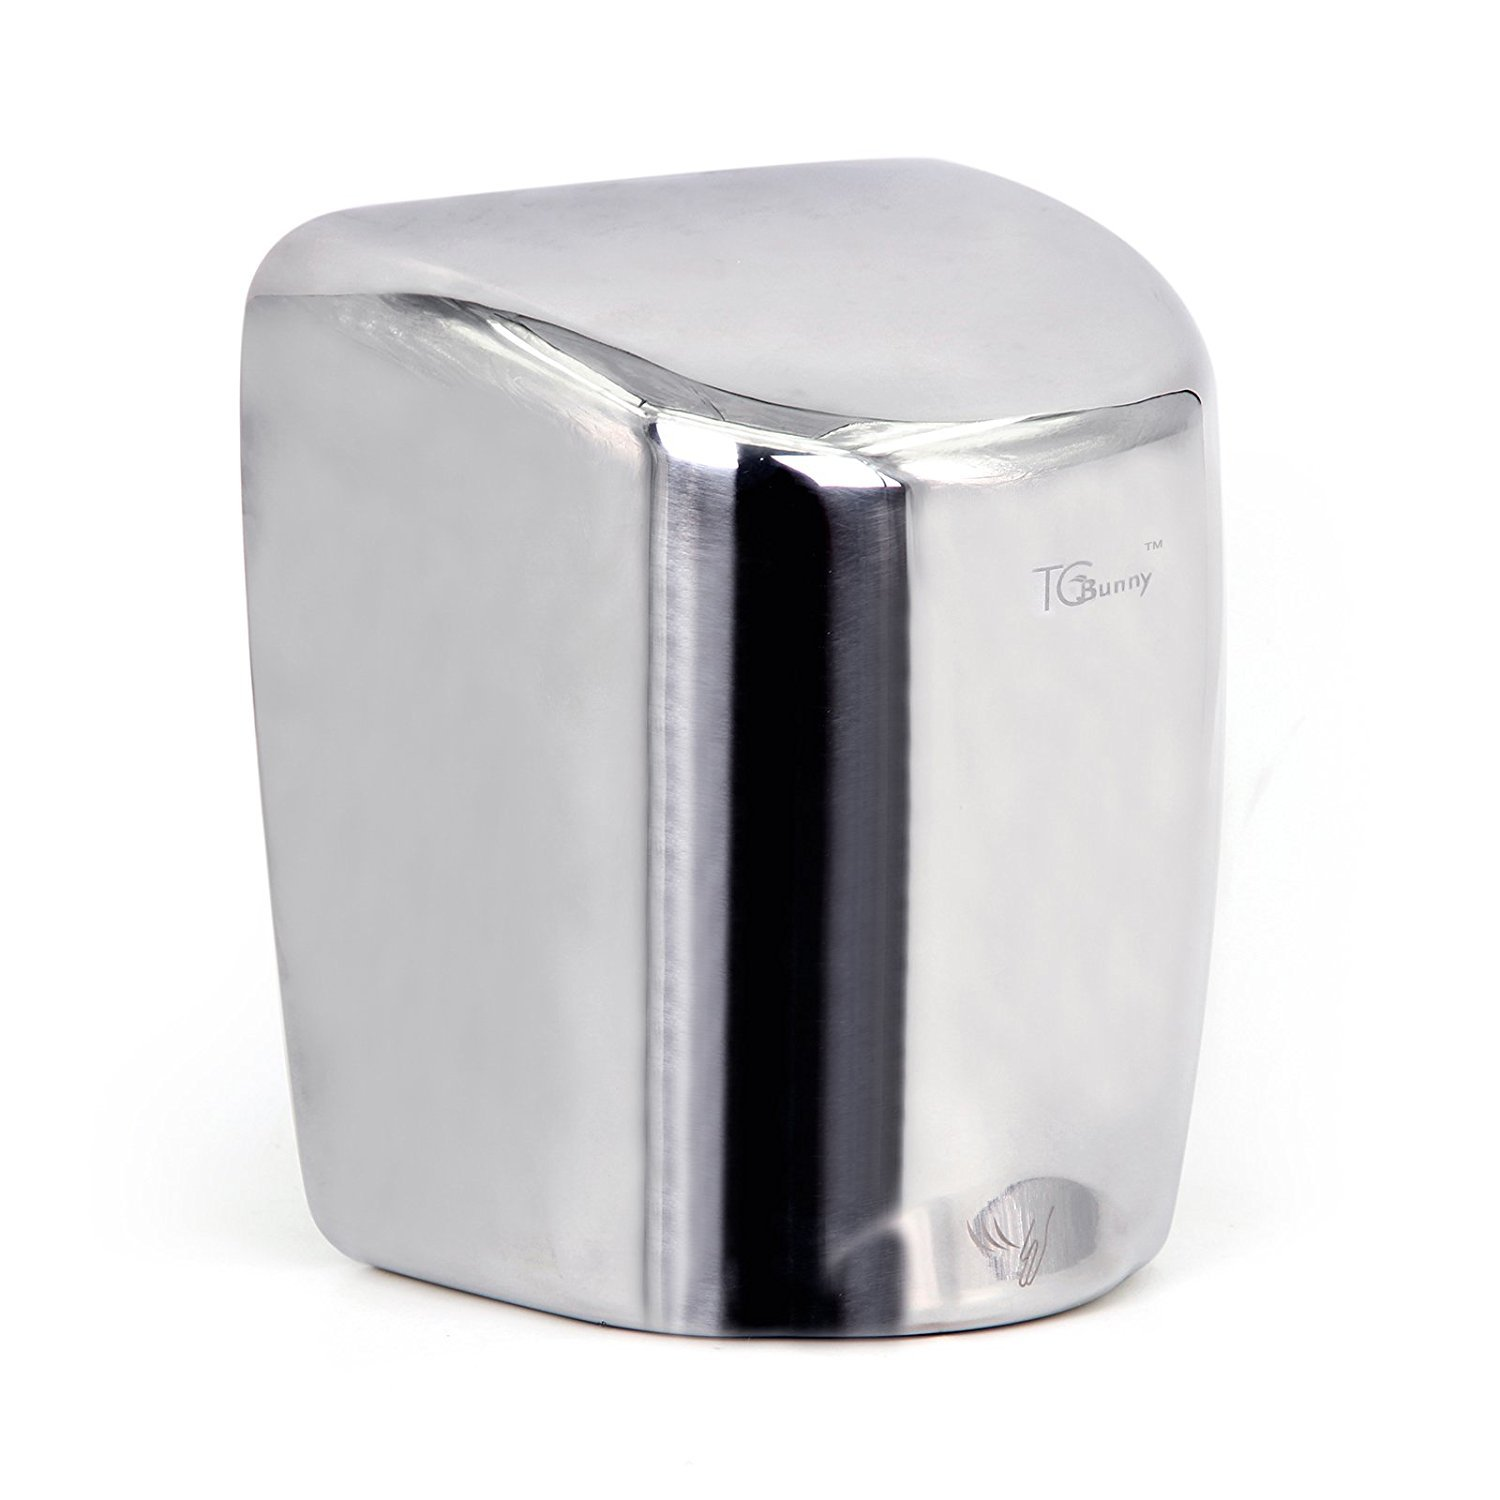 TCBunny (1 Pack) Heavy Duty 1800 Watts High Speed 90m/s Automatic Hot Commercial Hand Dryer - Stainless Stee